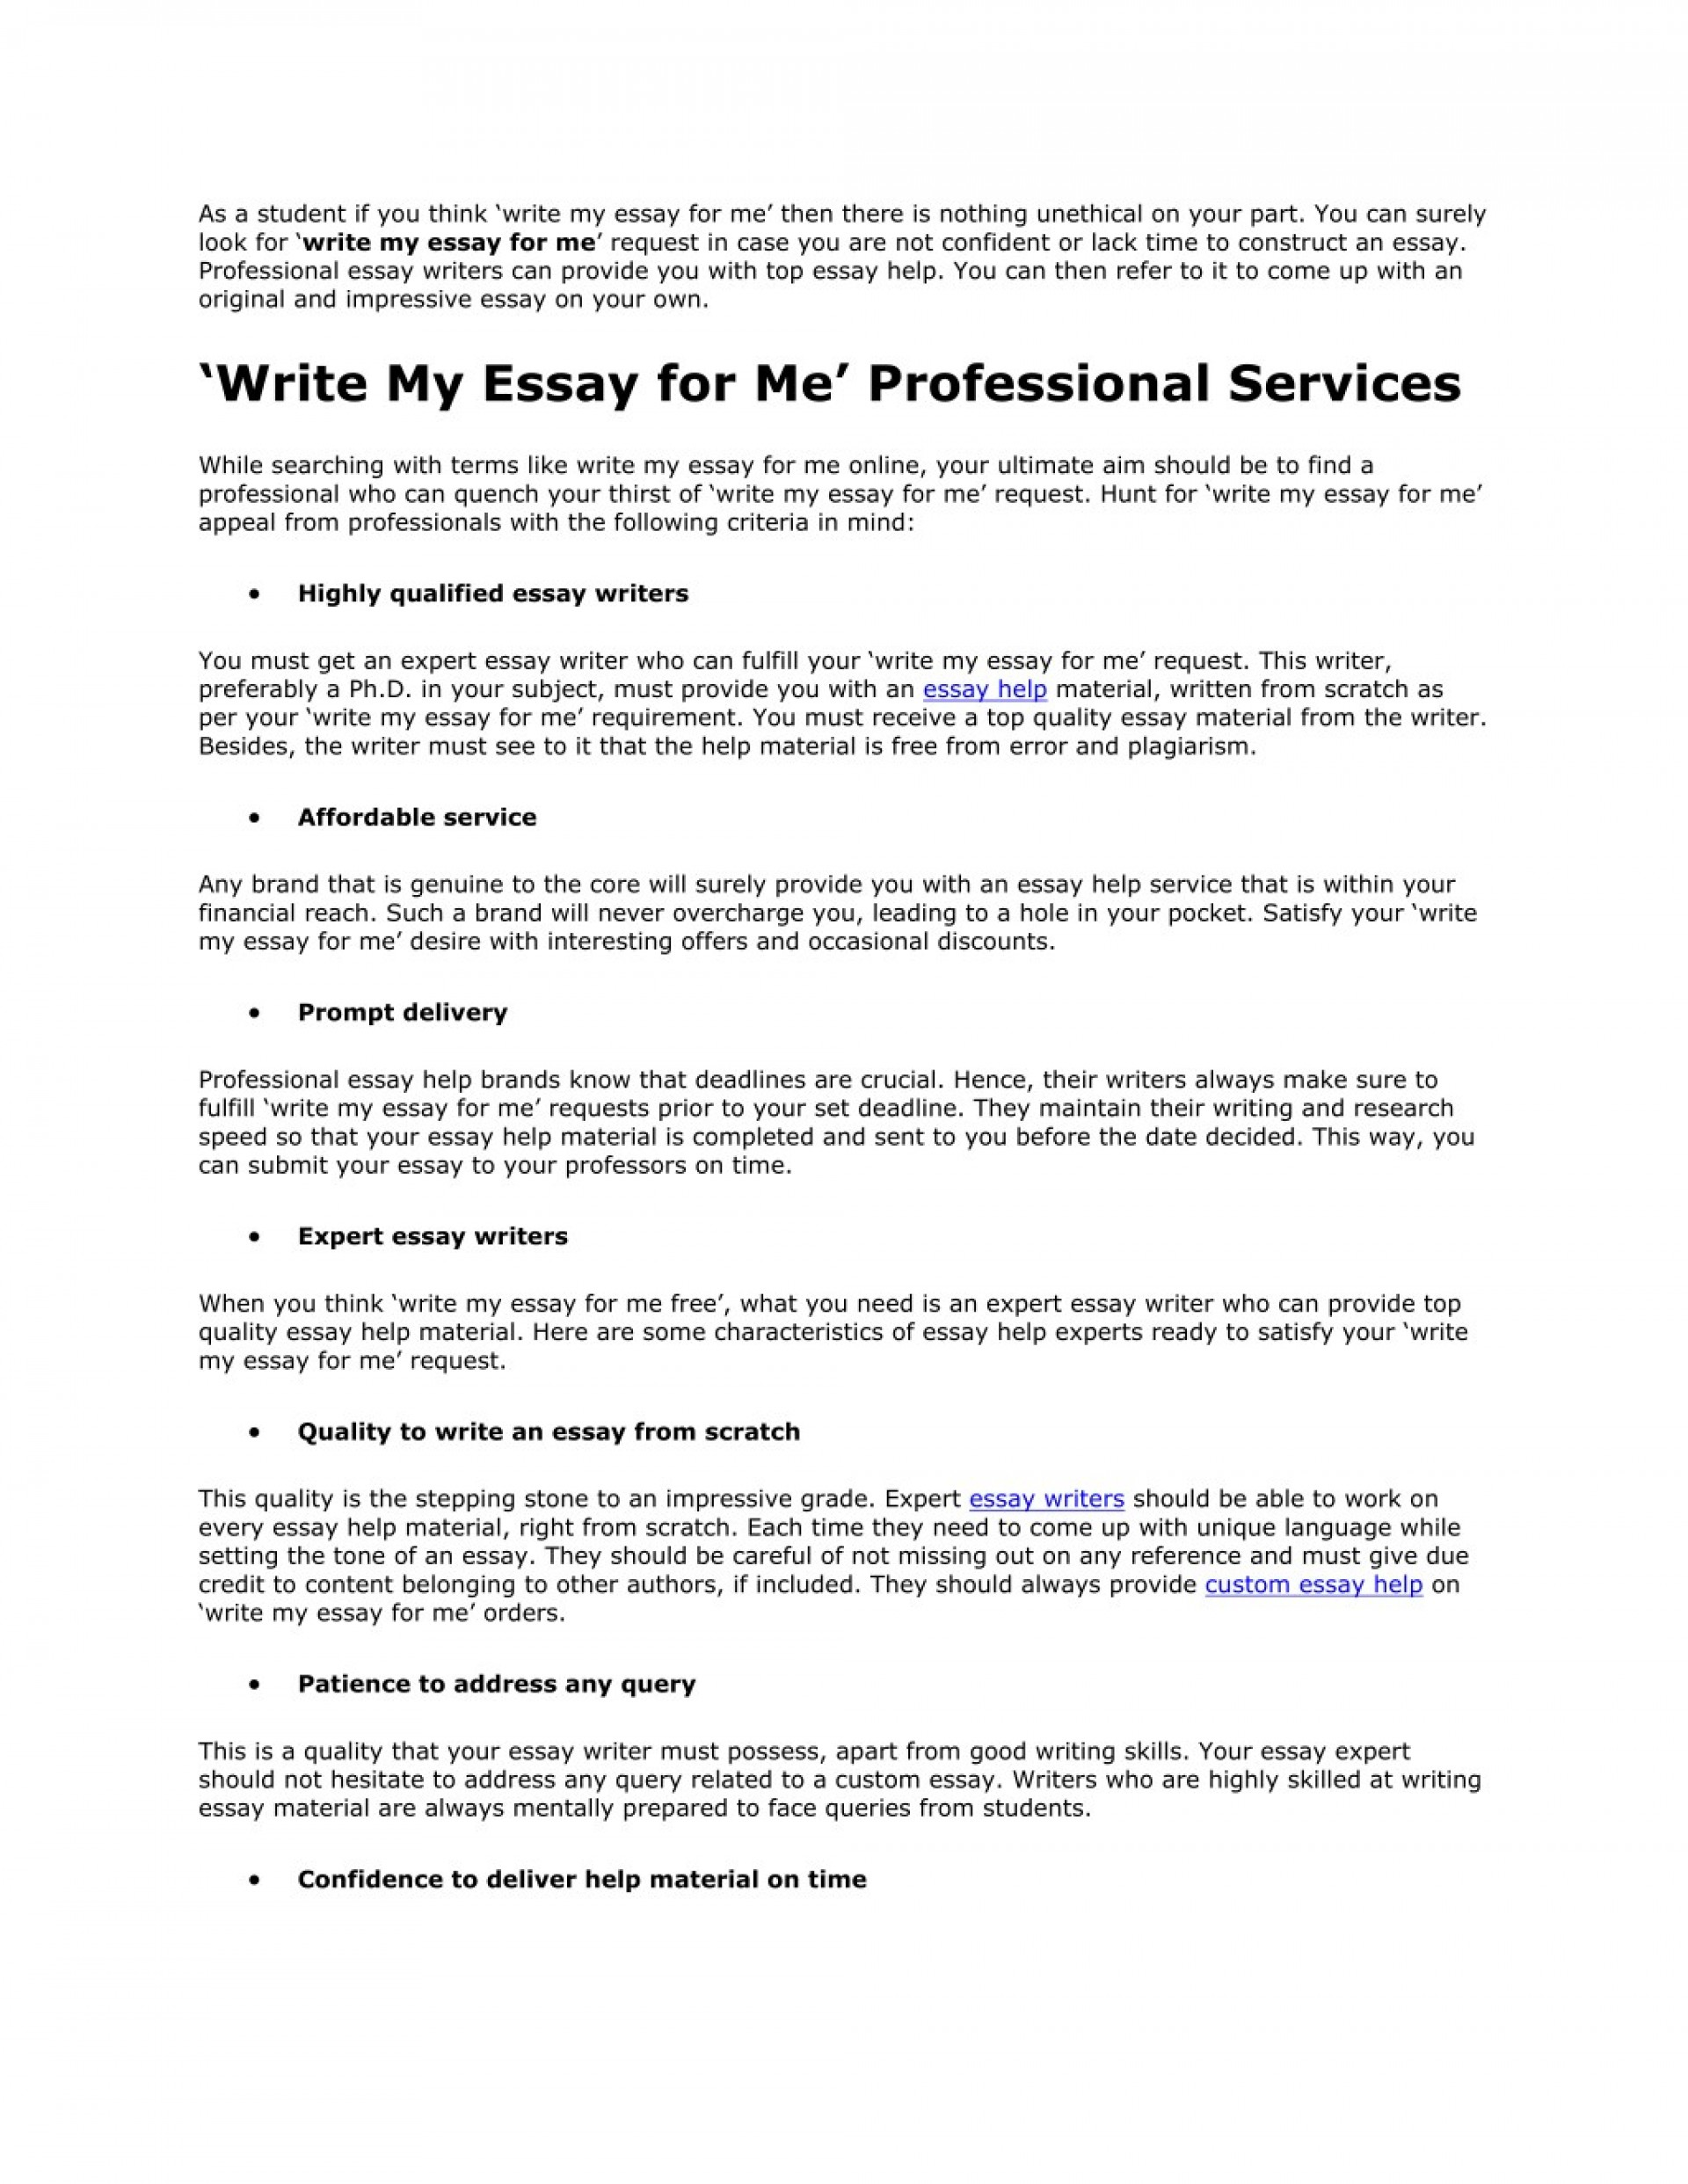 006 Essay Example Write For Me As Student If You Think My Amazing Discount Code Online Free 1920